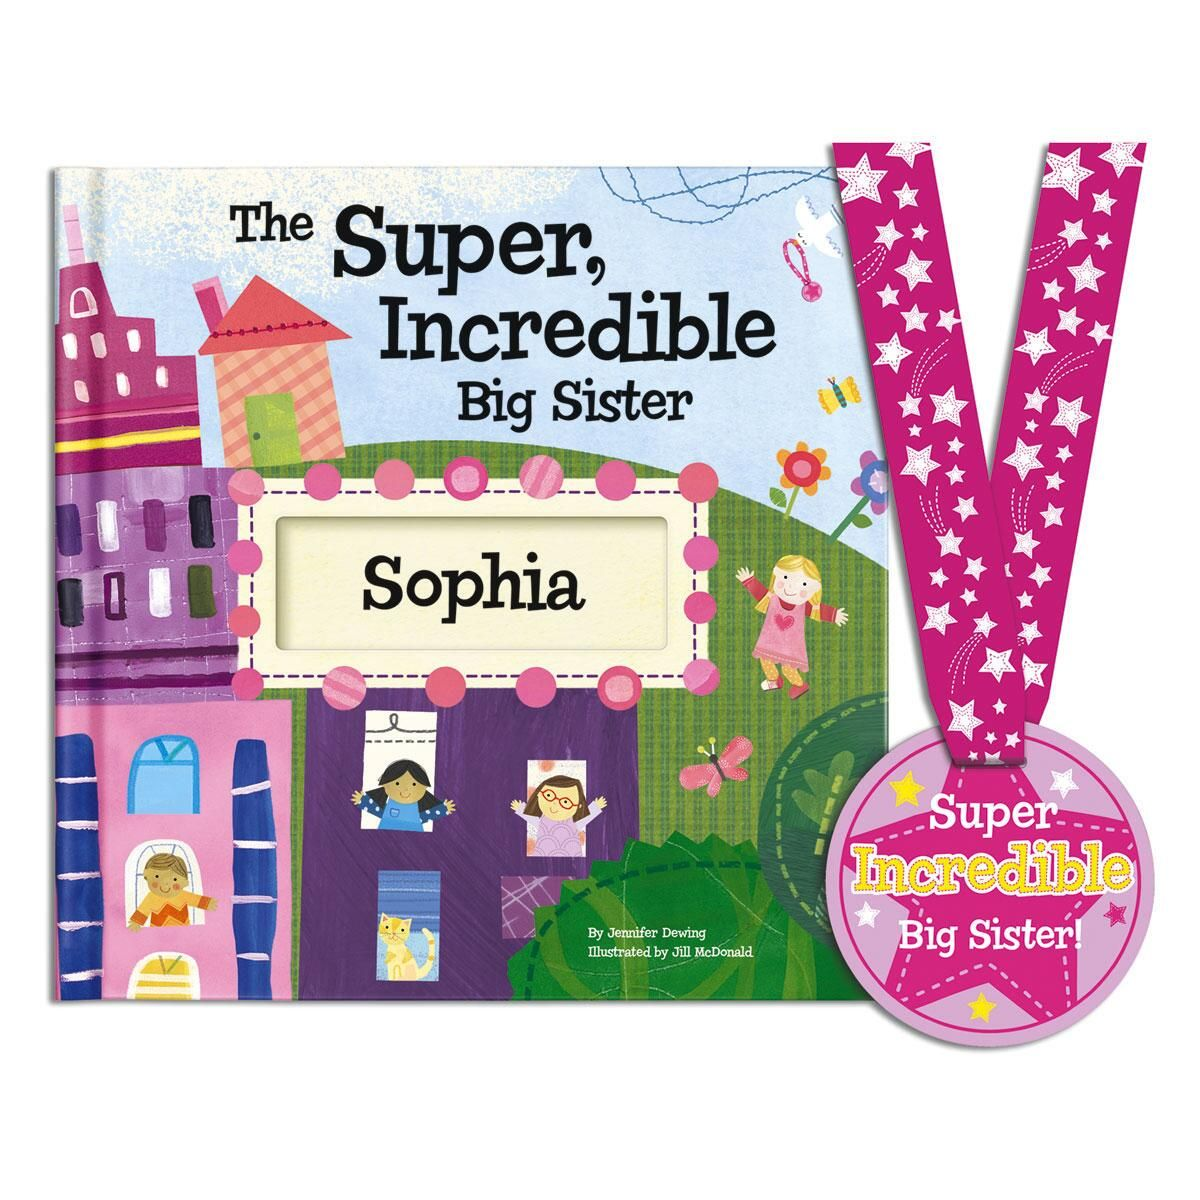 The Super Incredible Big Sister Storybook